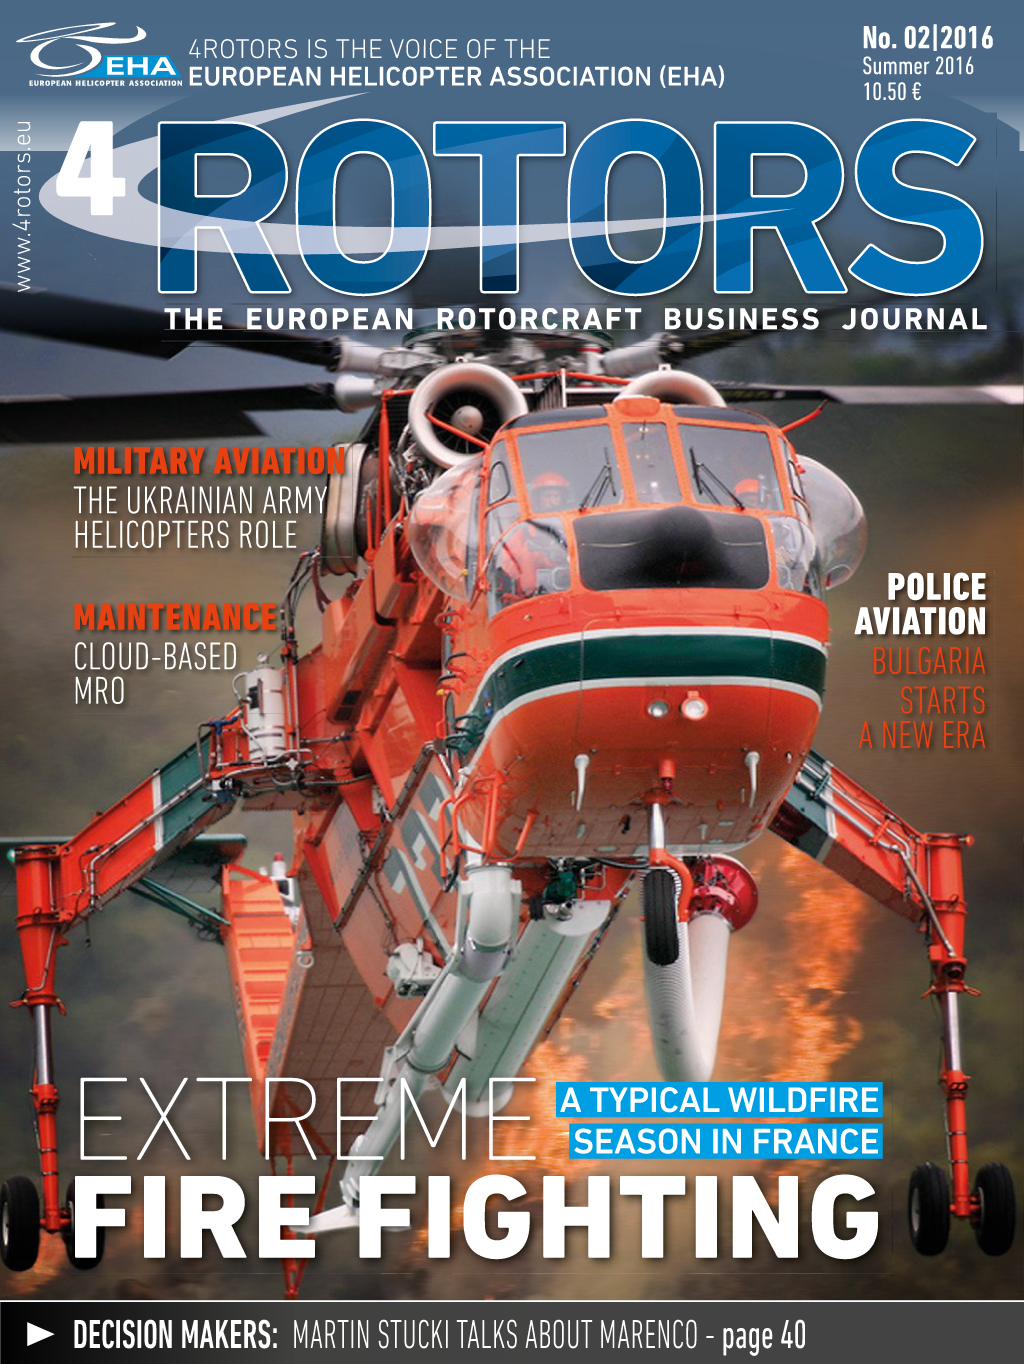 4Rotors Magazine <br /> <b>Notice</b>:  Undefined index: number in <b>/var/www/web3/htdocs/4ROTORS/website/index.php</b> on line <b>222</b><br /> <br /> <b>Notice</b>:  Undefined index: year in <b>/var/www/web3/htdocs/4ROTORS/website/index.php</b> on line <b>222</b><br /> -